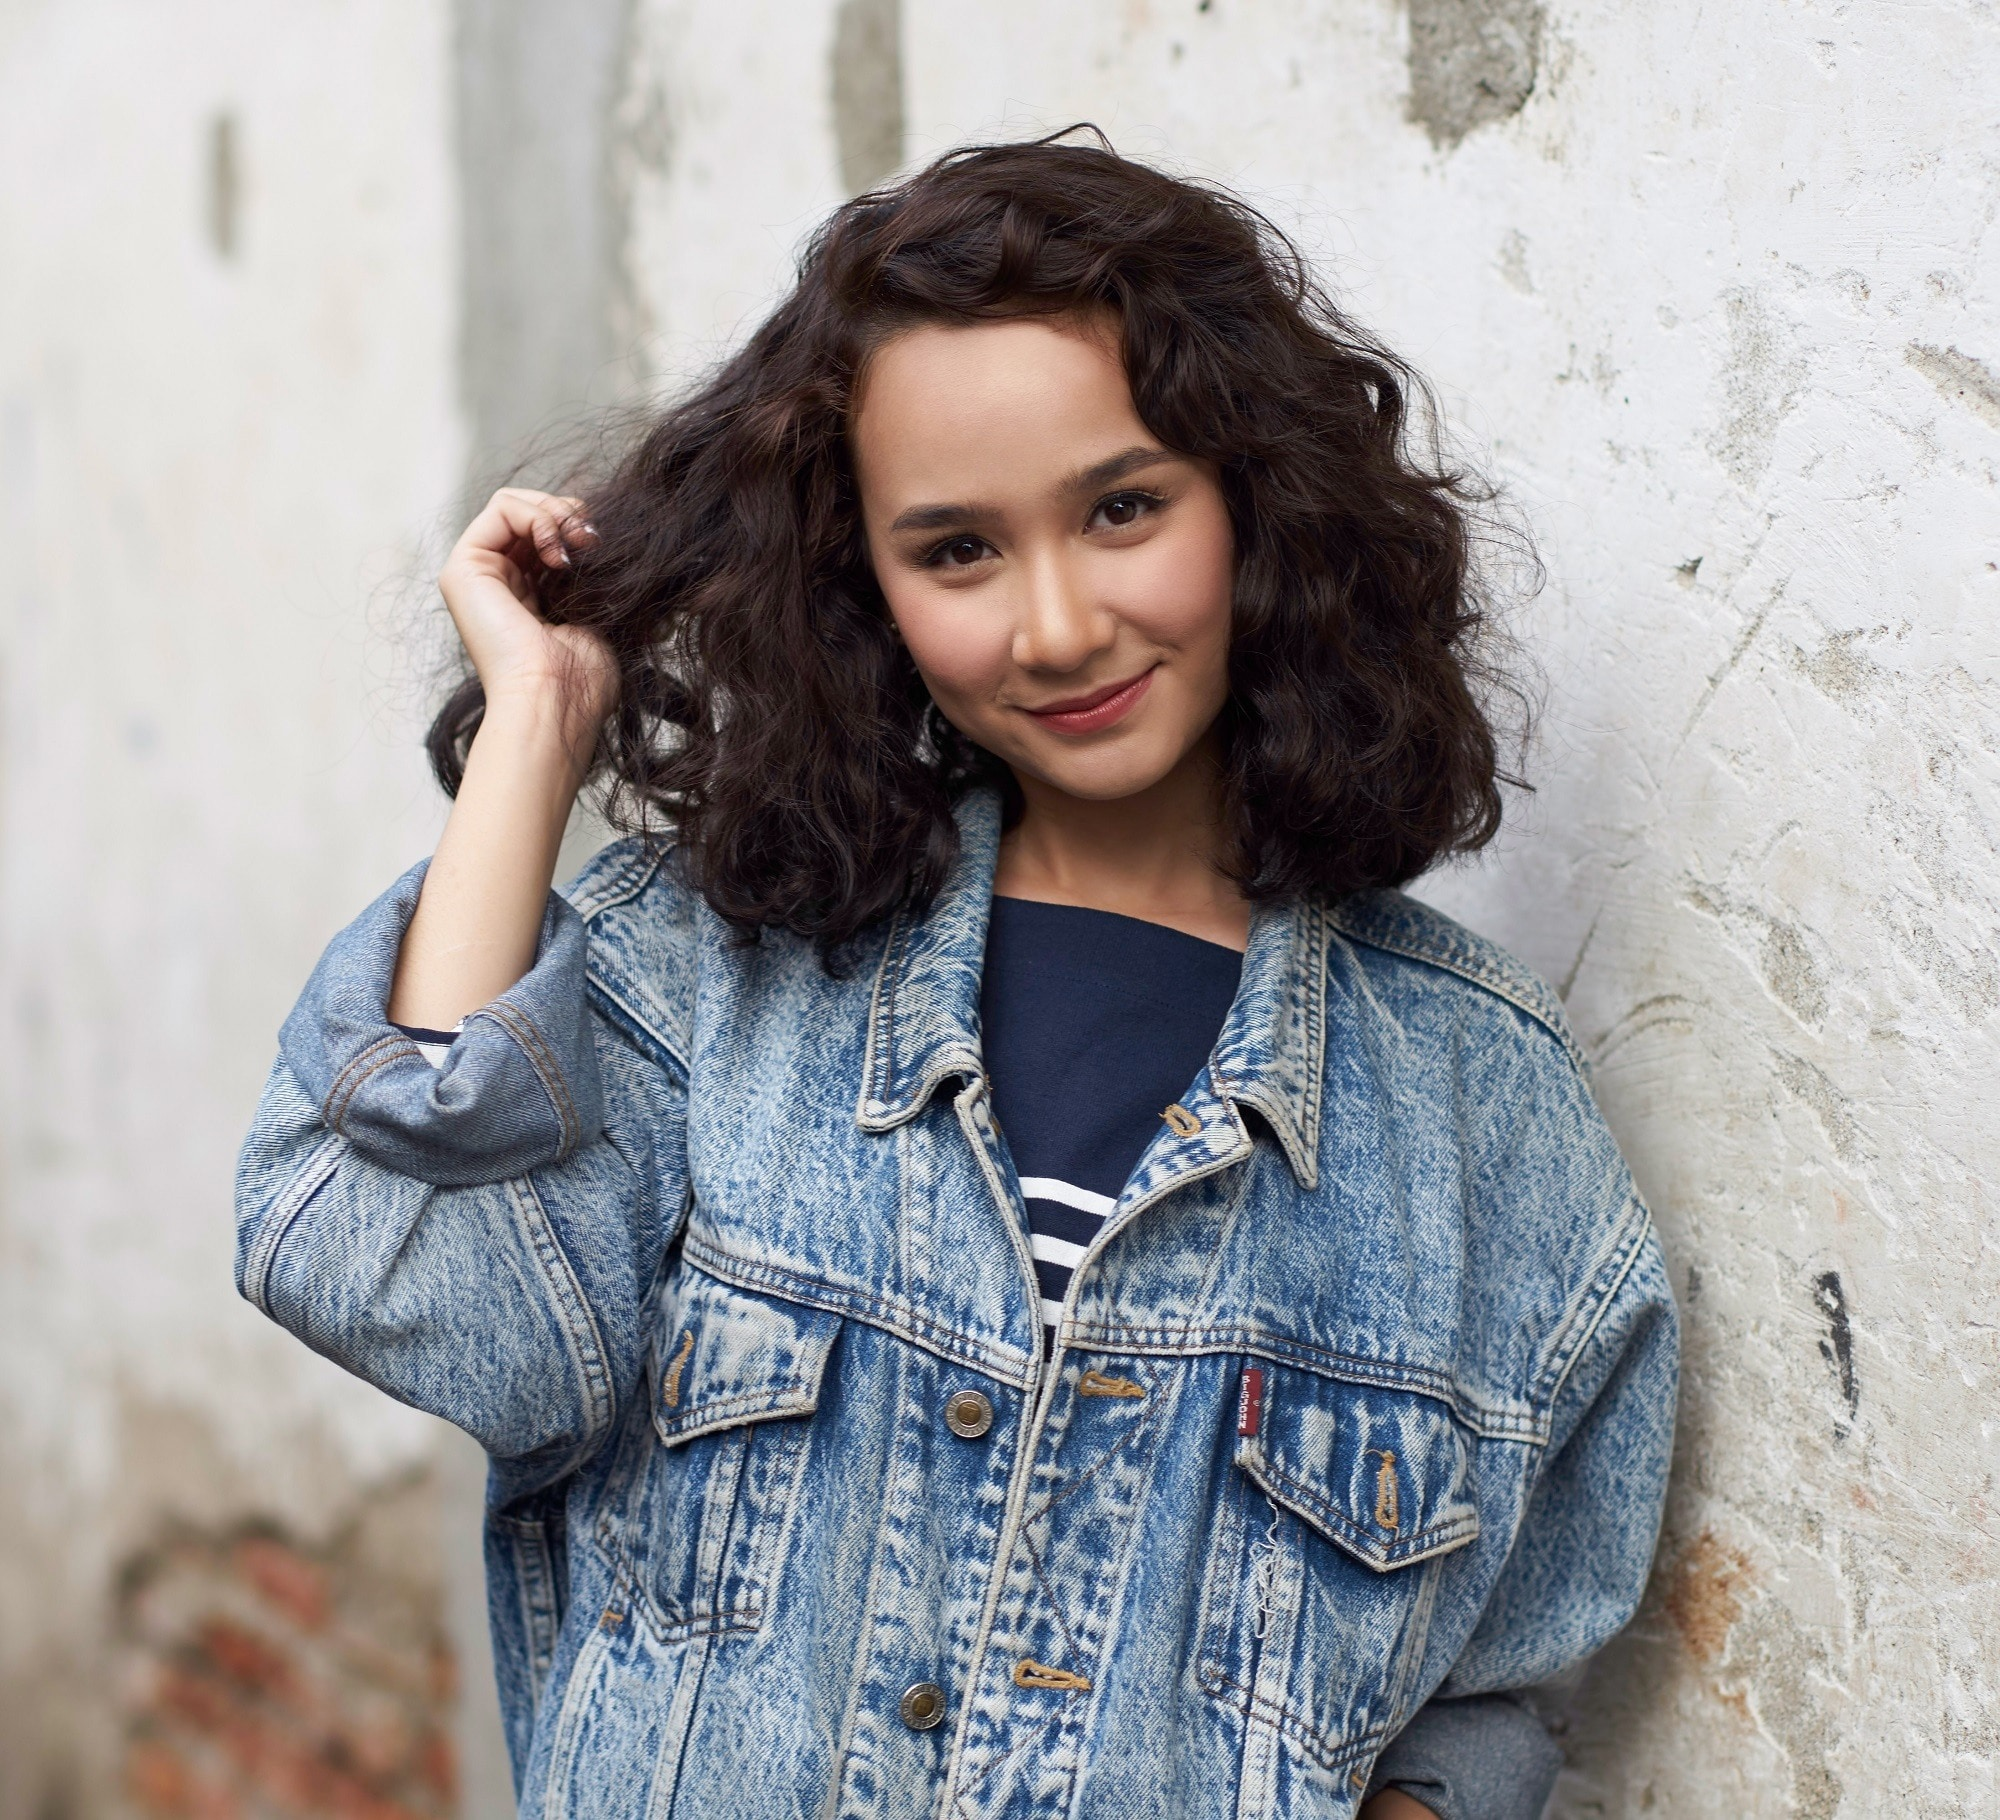 Frizzy hair remedies: Closeup shot of Asian girl touching her black curly hair wearing denim jacket against a stone wall